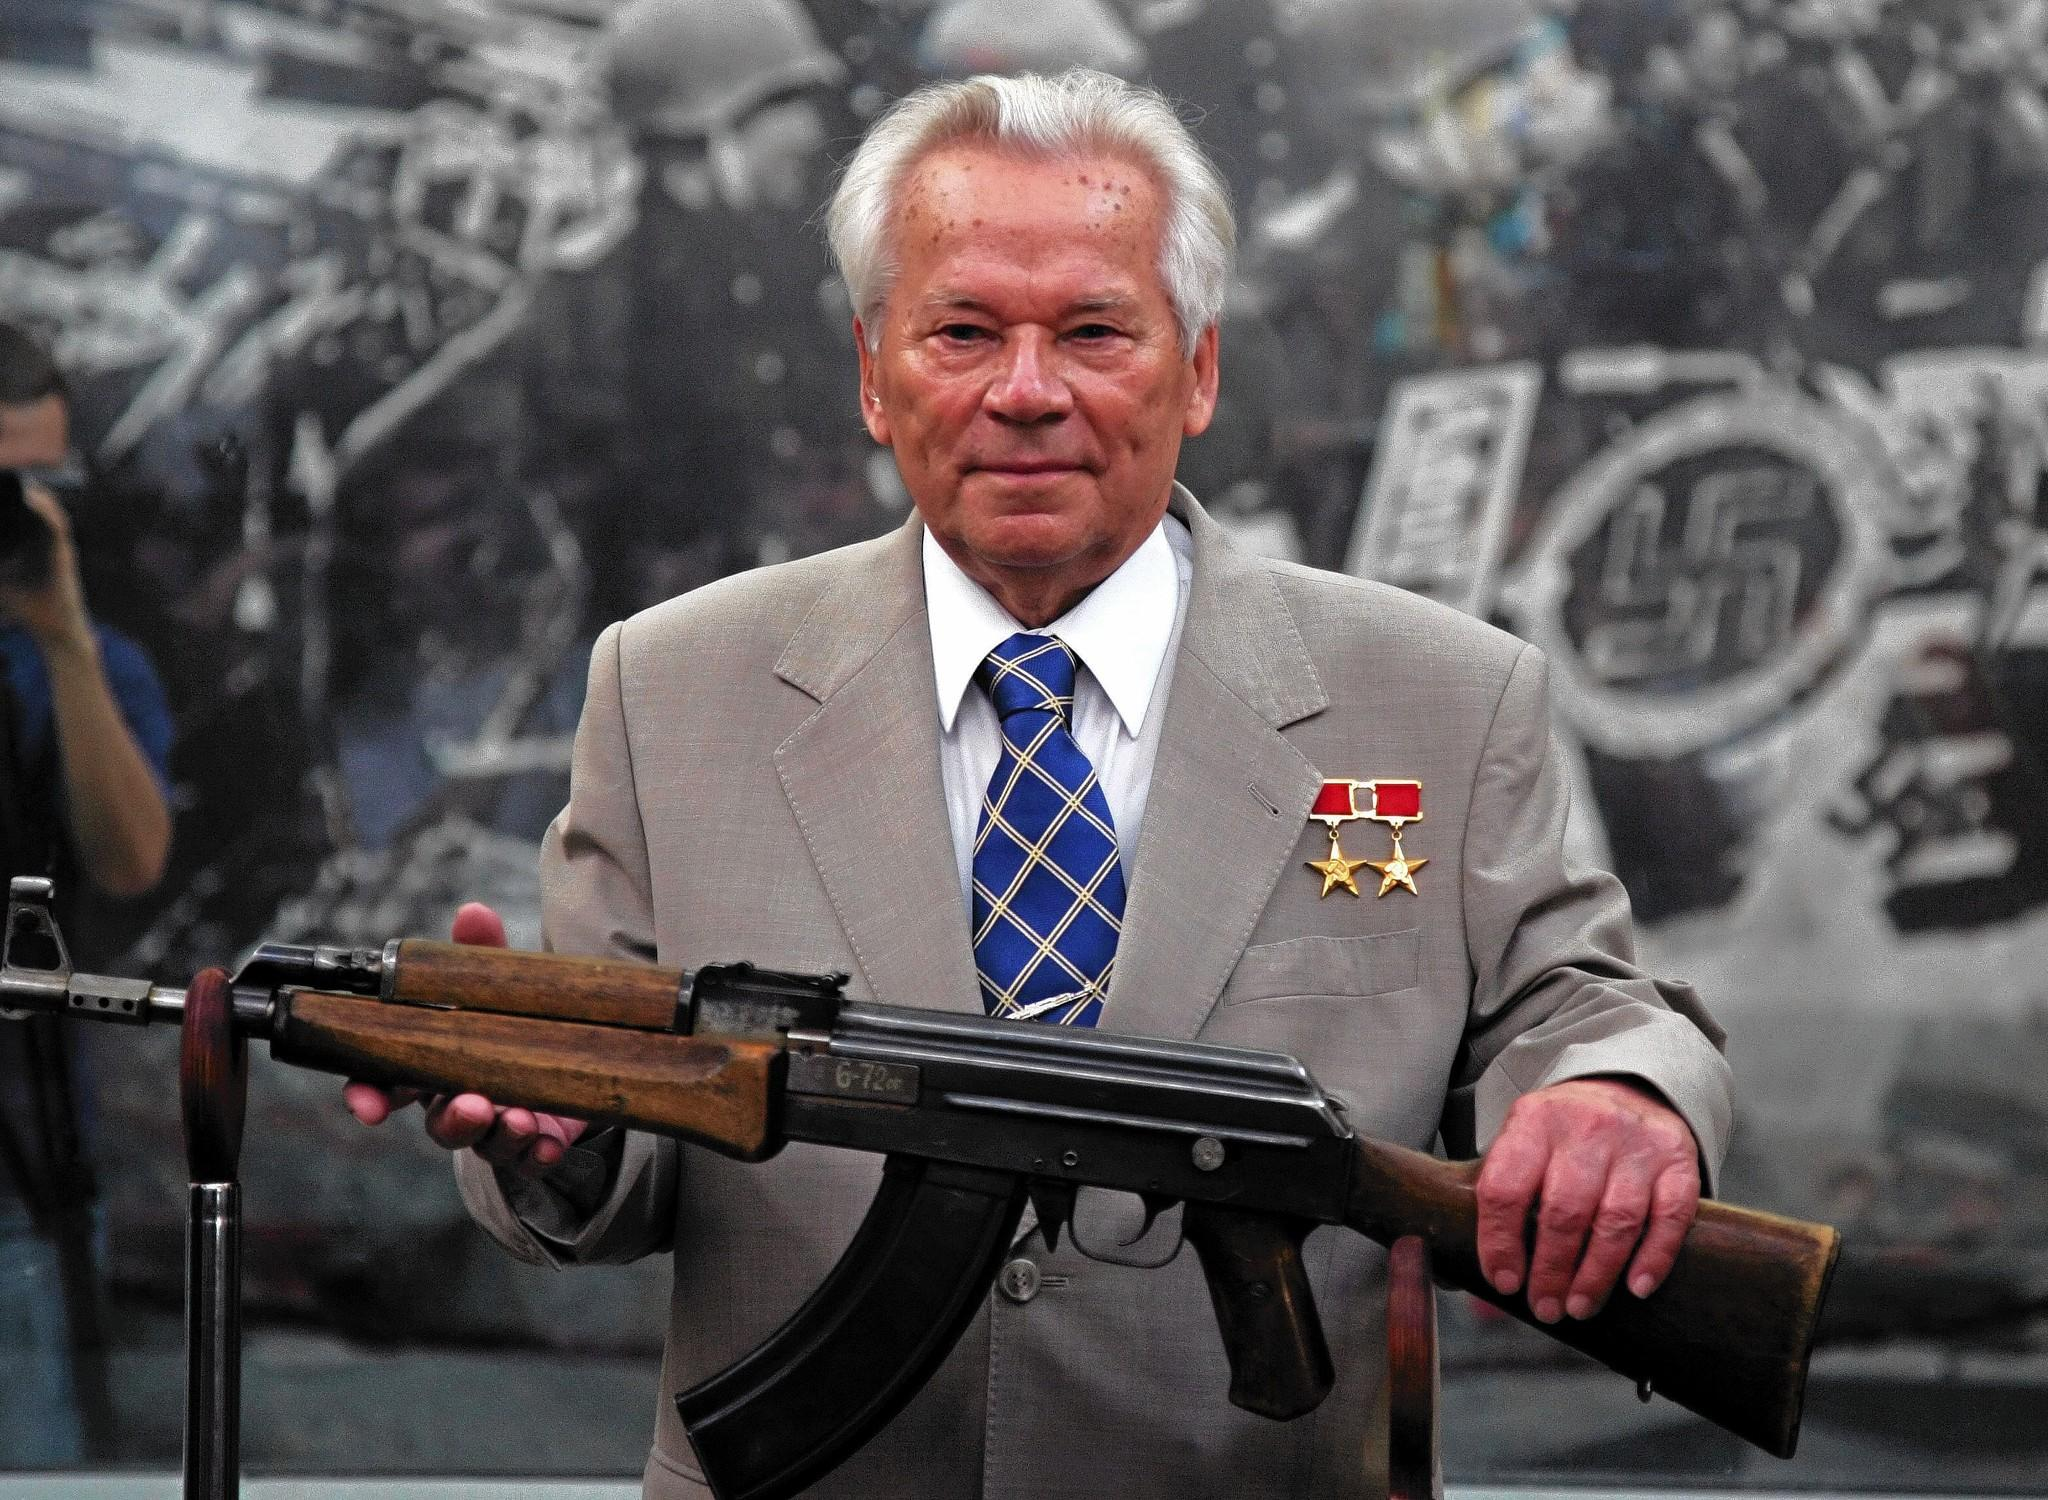 Legendary Russian gun-maker Mikhail Kalashnikov, shown in 2007. His last name is well-known to Americans as the name for a famous rifle.